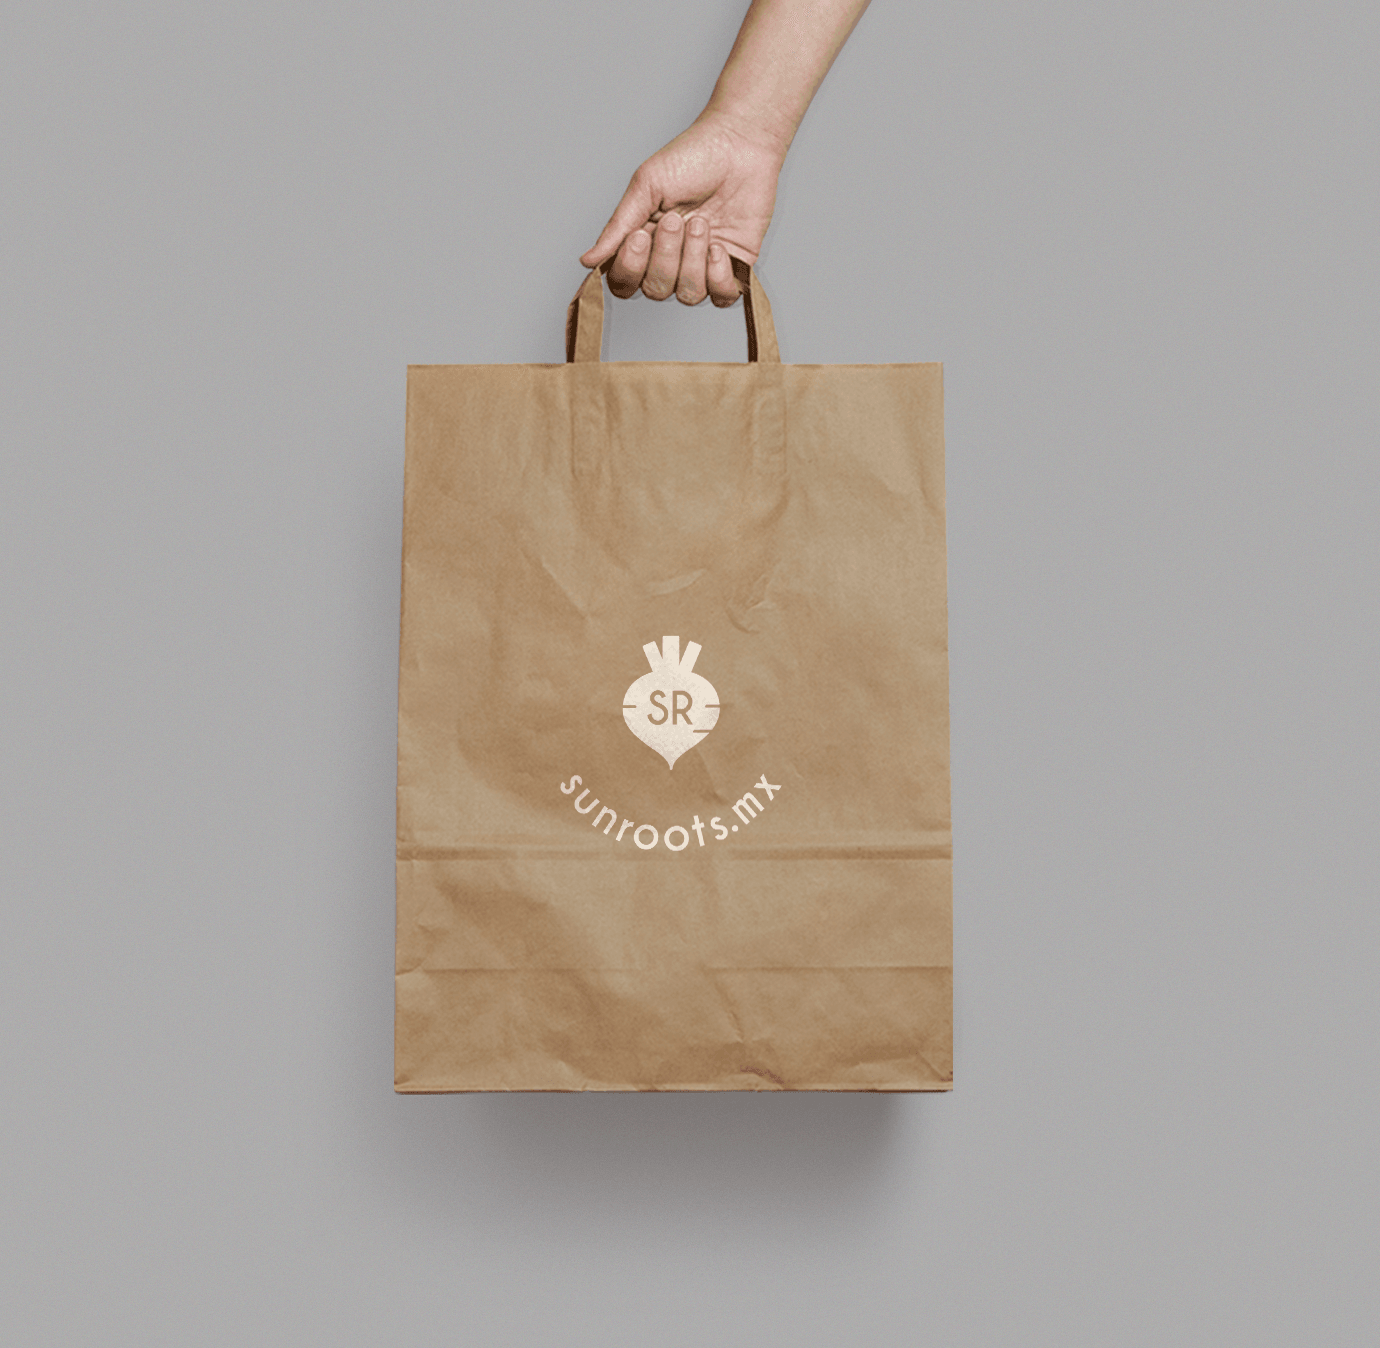 paper-bag-sunroots-yoenpaperland-compressor